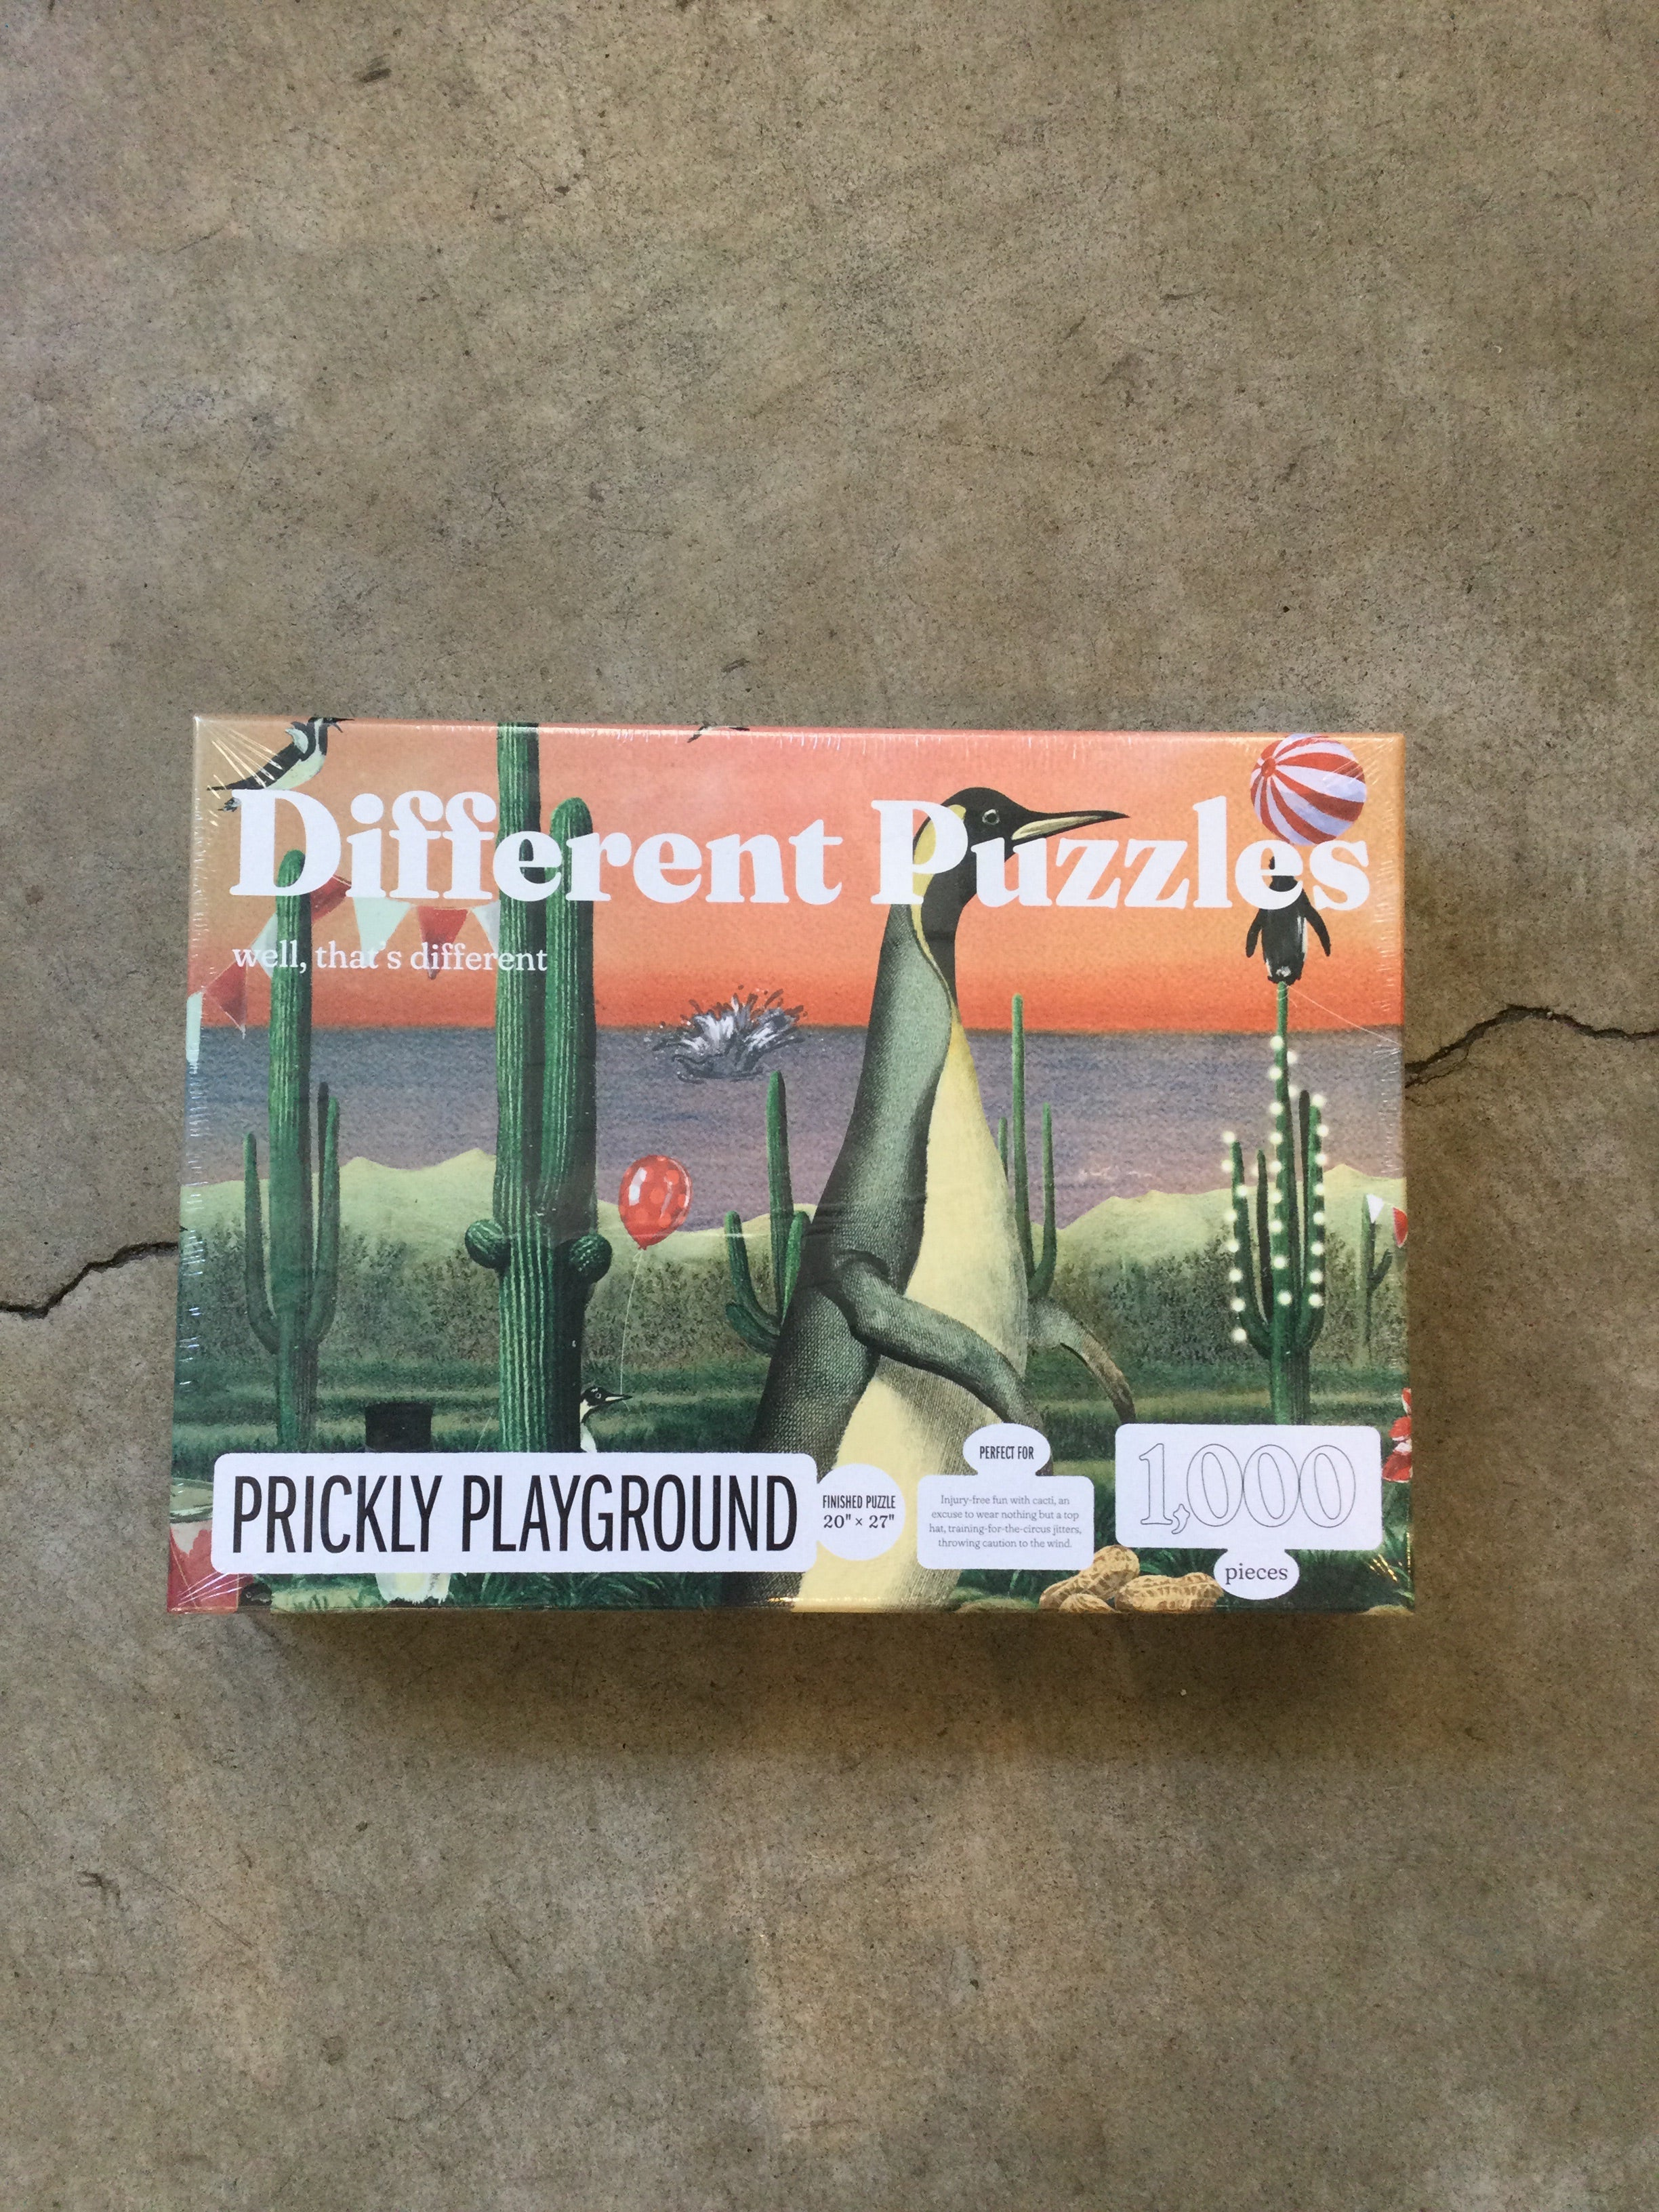 Different Puzzles - 1000 Pieces - Prickly Playground